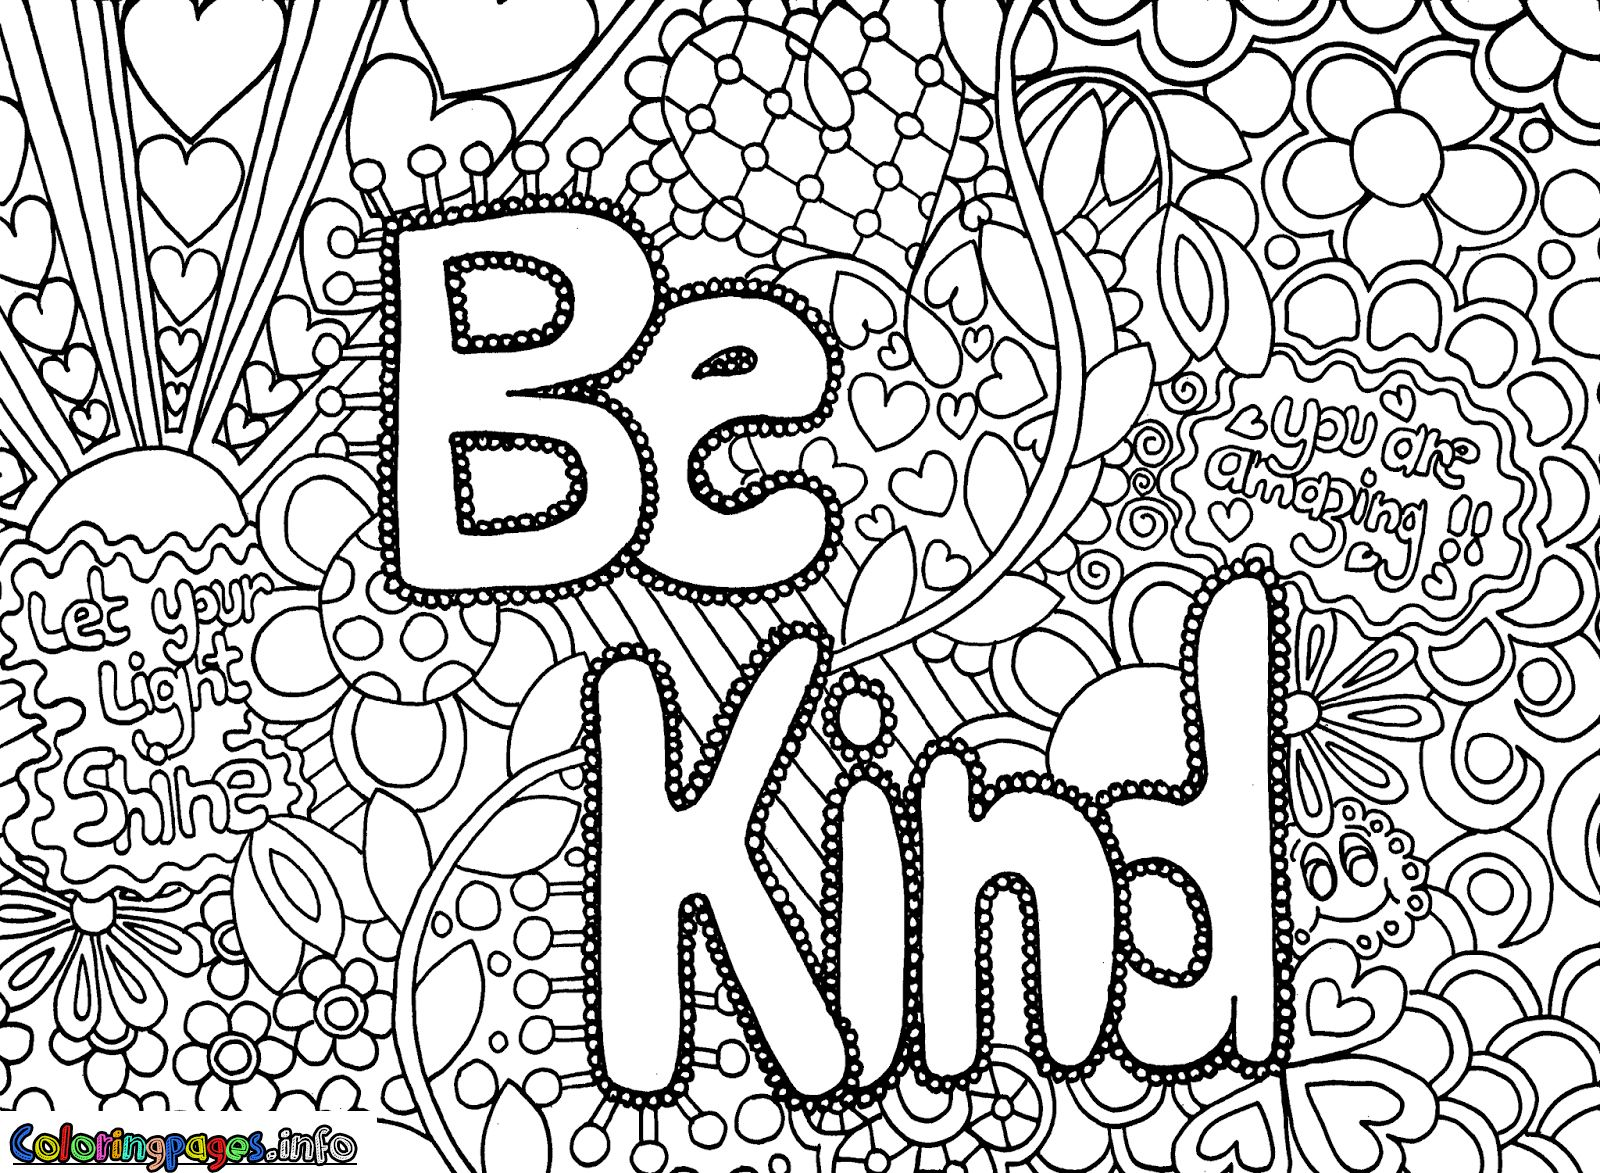 Coloring Pages 14 Be Kind Hard Detailed Coloring Pages Coloring Pages For Teenagers Abstract Coloring Pages